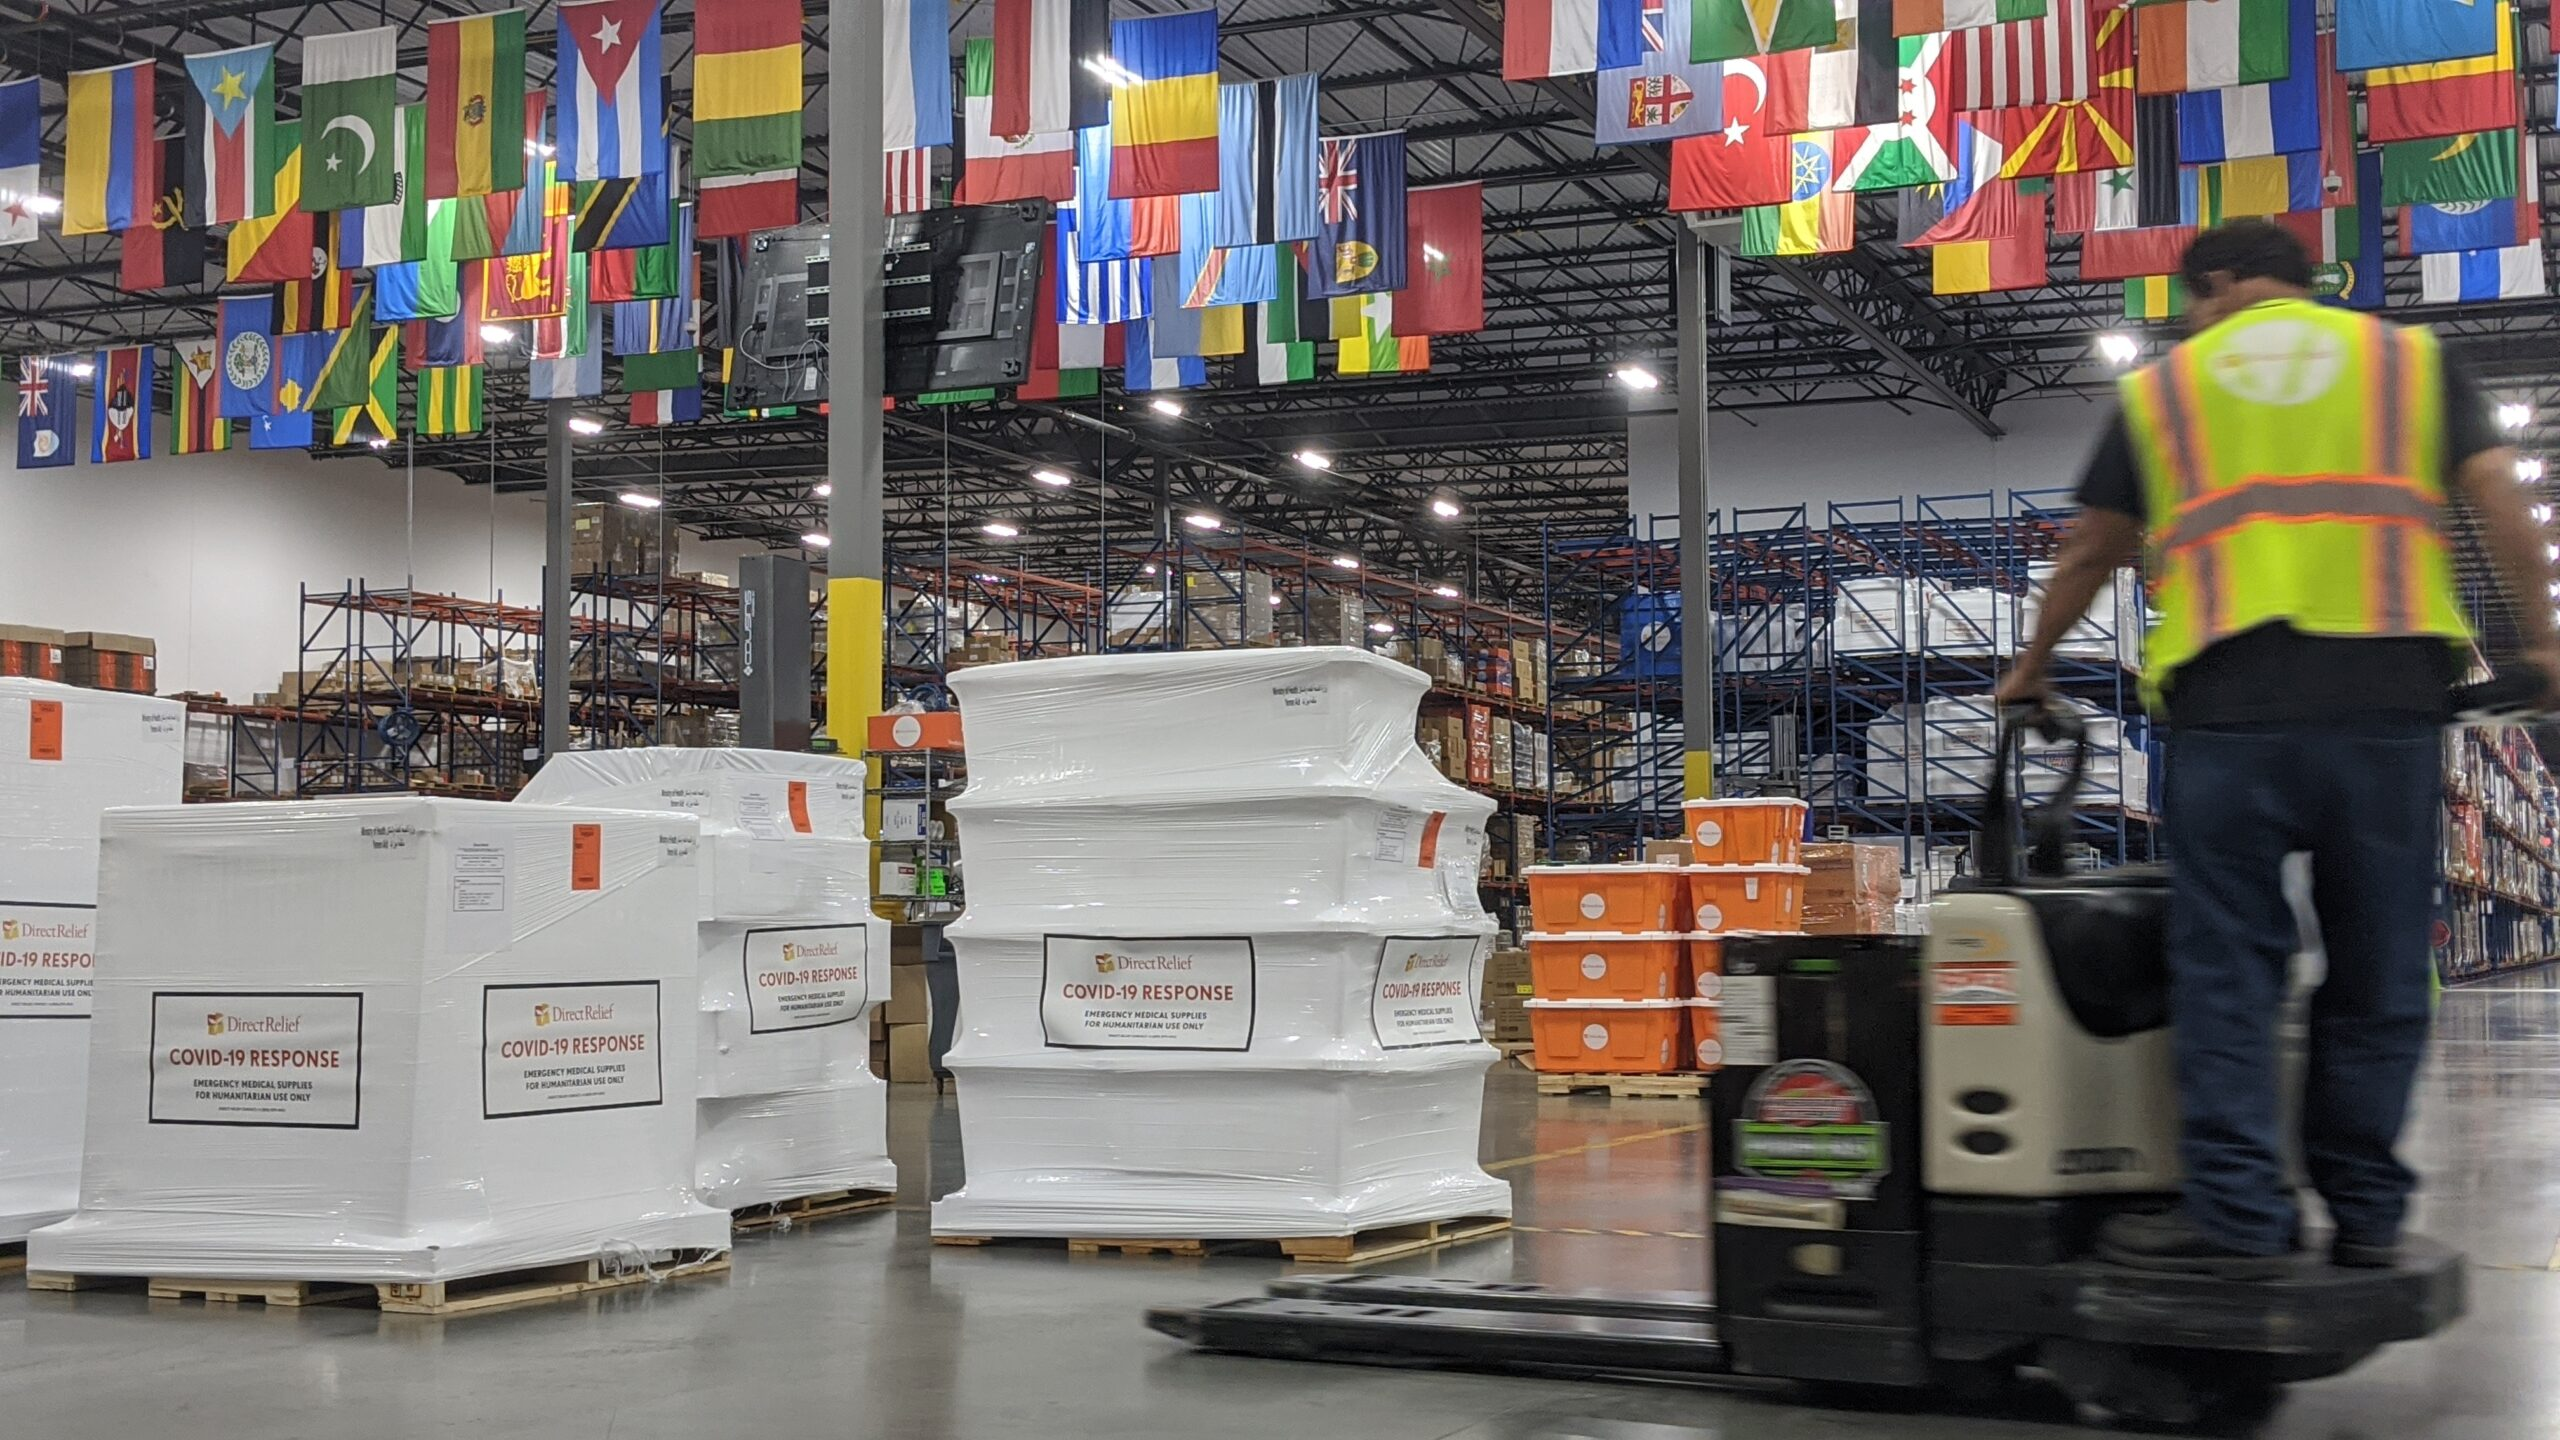 A shipment containing 150 oxygen concentrators and enough ICU medication for  10,000 Covid-19 patients is staged at Direct Relief's warehouse for delivery to Yemen. (Photo: Tony Morain/Direct Relief)